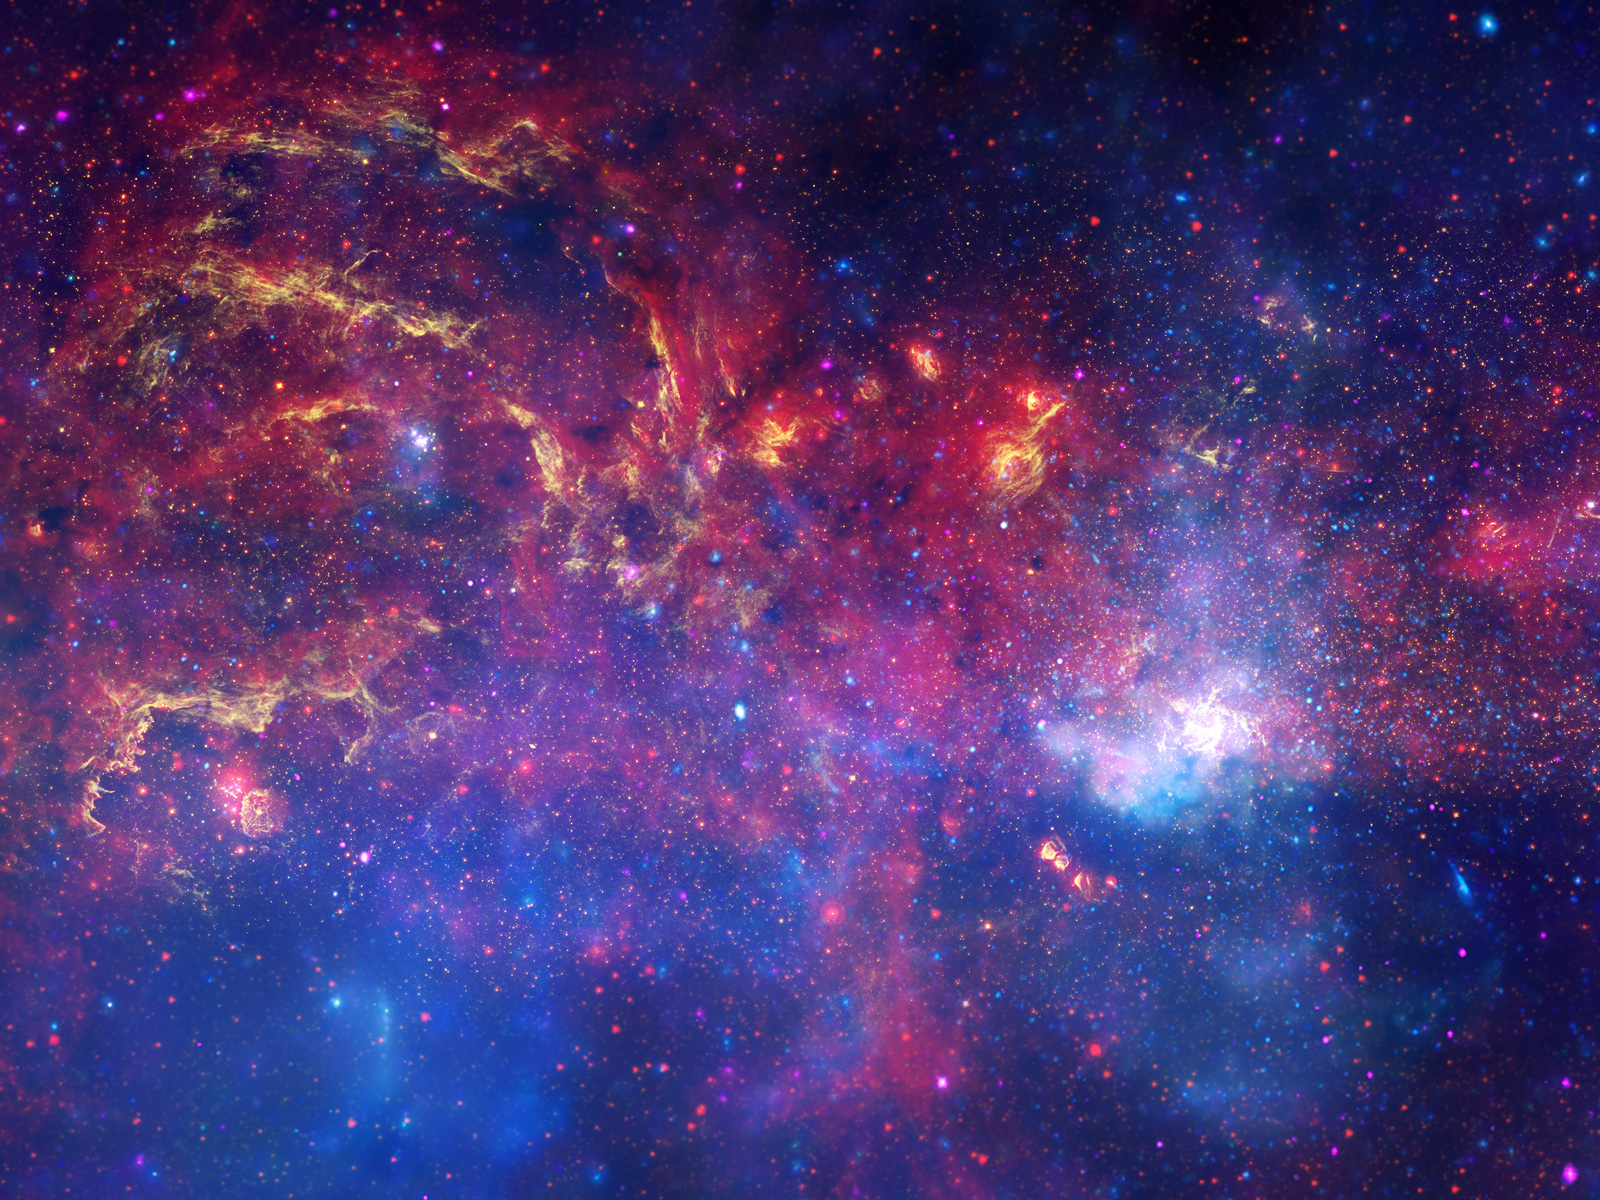 celebrates International Year of Astronomy with new view of Milky Way 1600x1200